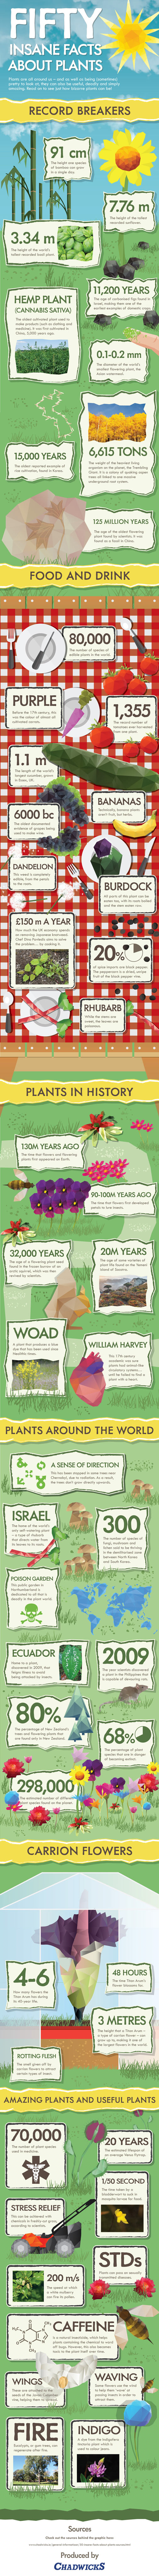 50 Insane Facts About Plants